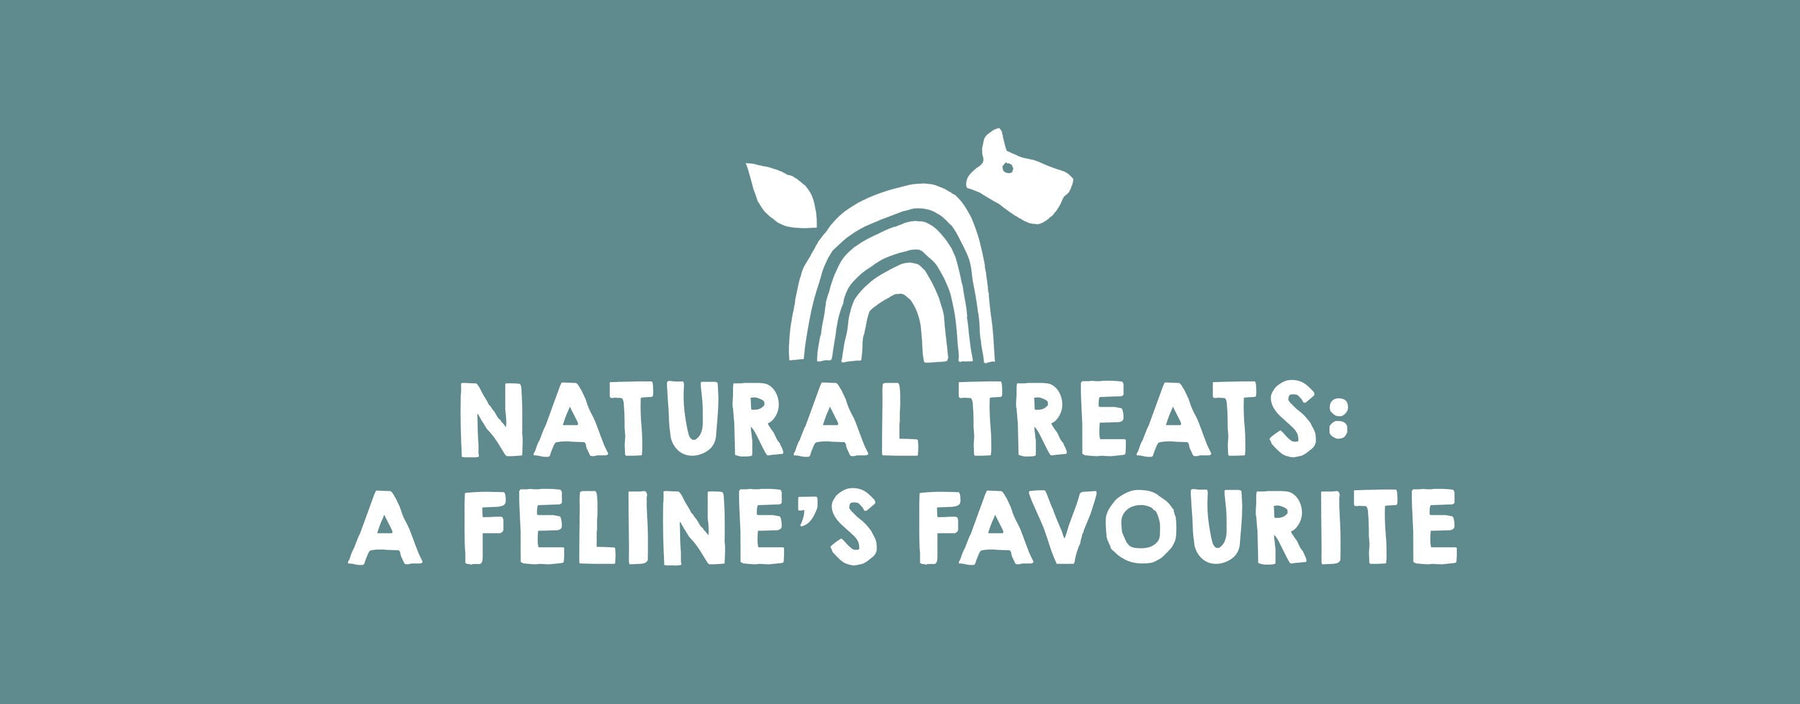 Natural Treats: A Feline's Favourite